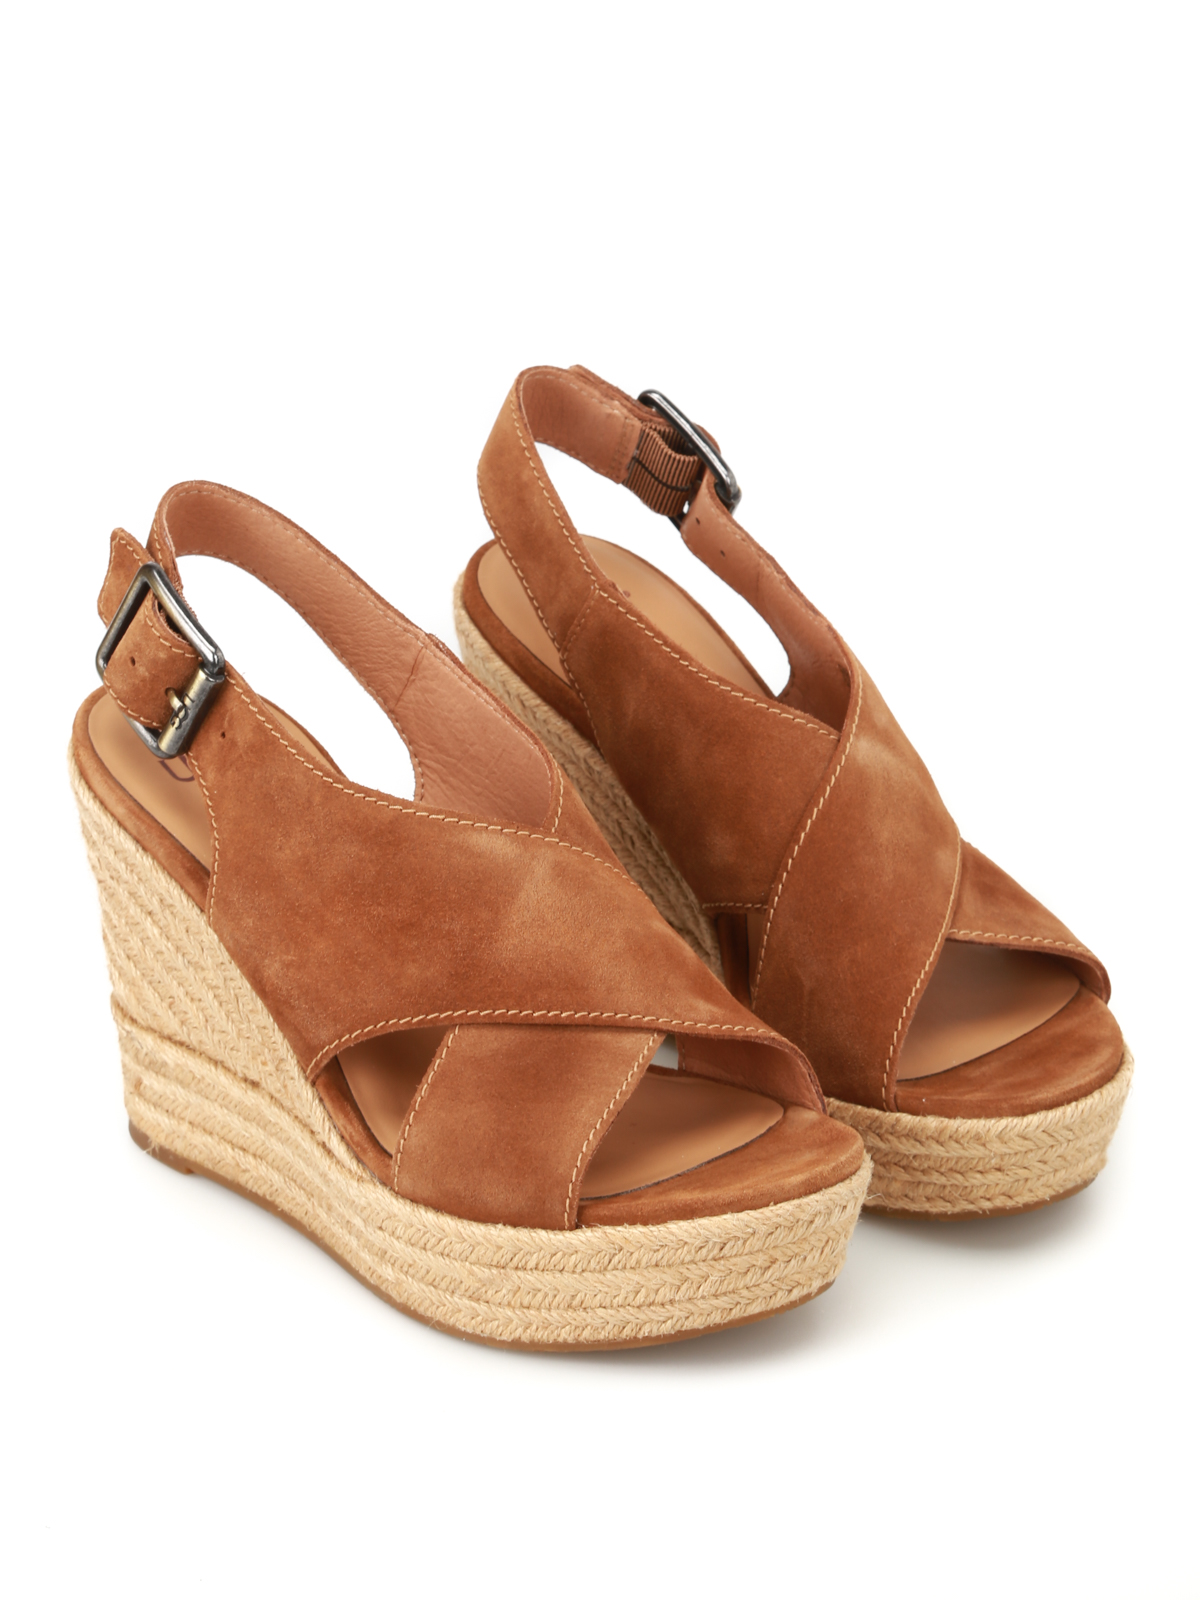 53bacc23a45 Ugg - Harlow suede wedge sandals - sandals - W HARLOW 1019902 W/CHE